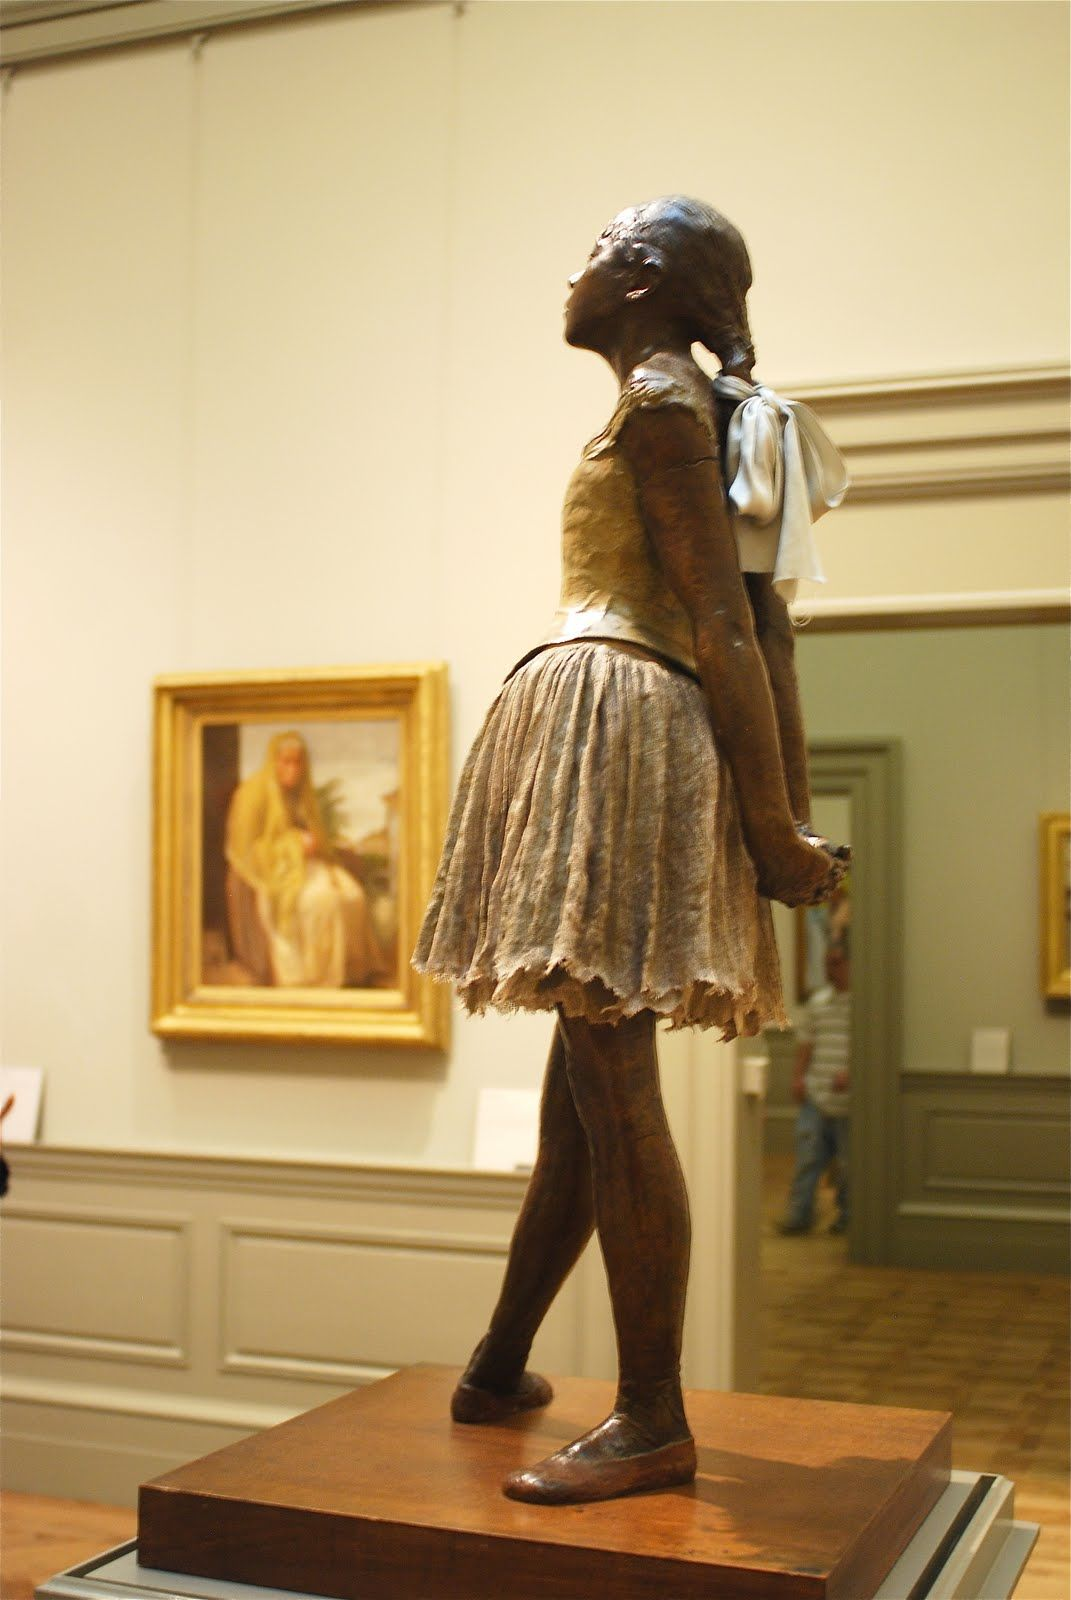 Behind Degas' famed ballerina. Always captivates me to see